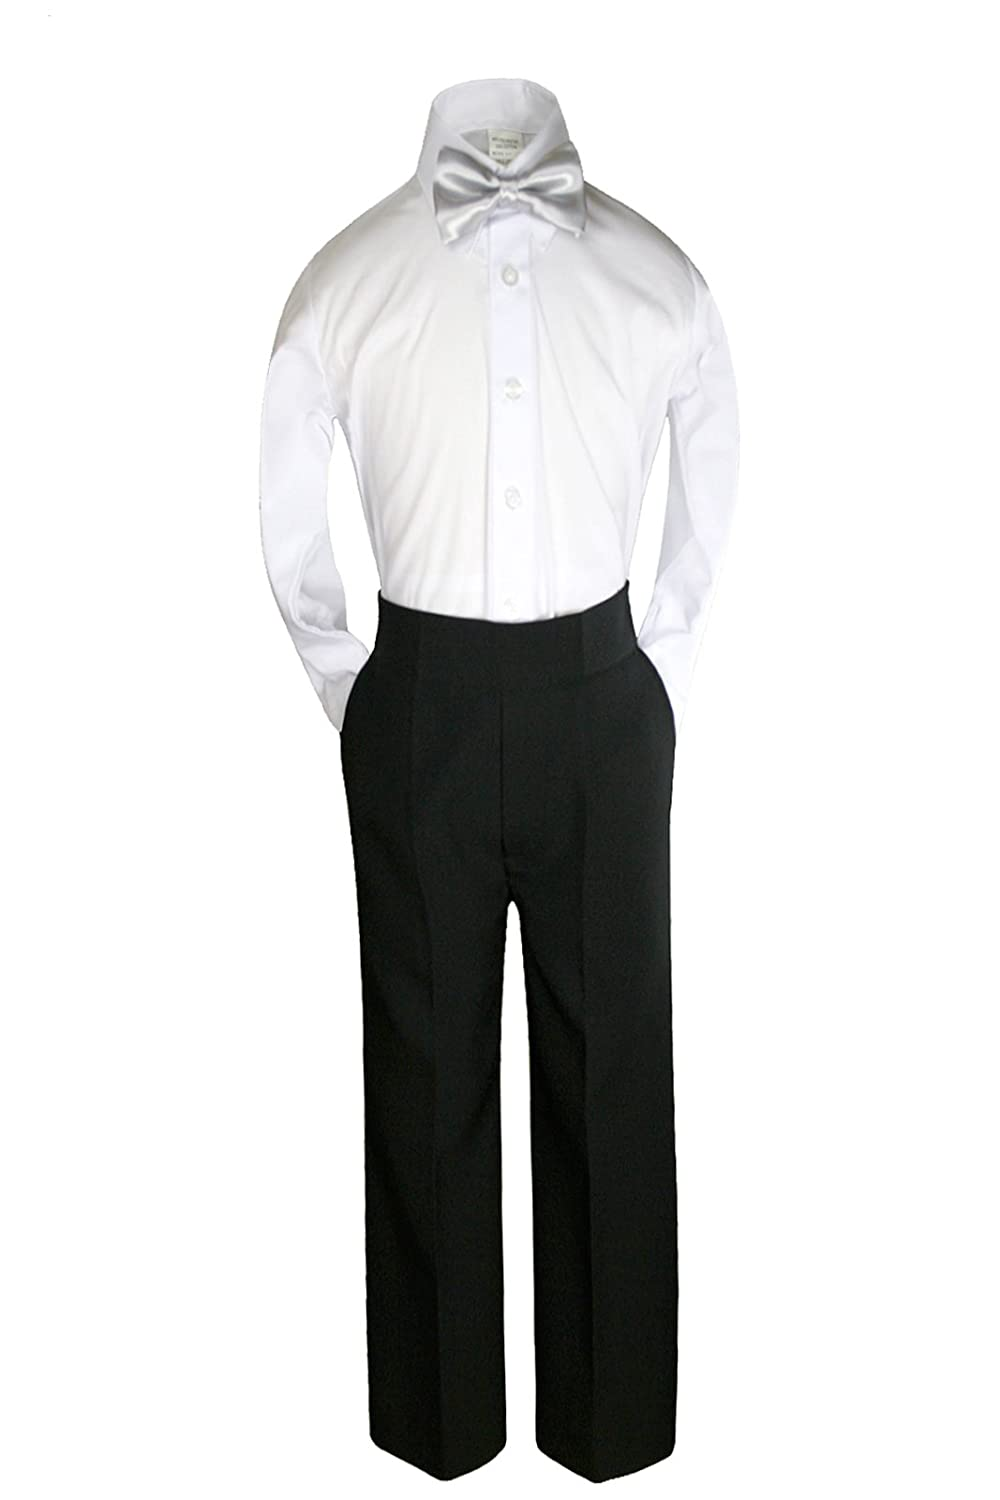 3pc Formal Baby Toddler Teens Boys Silver Bow Tie Pants Set Suits S-14 (S:(0-6 months))